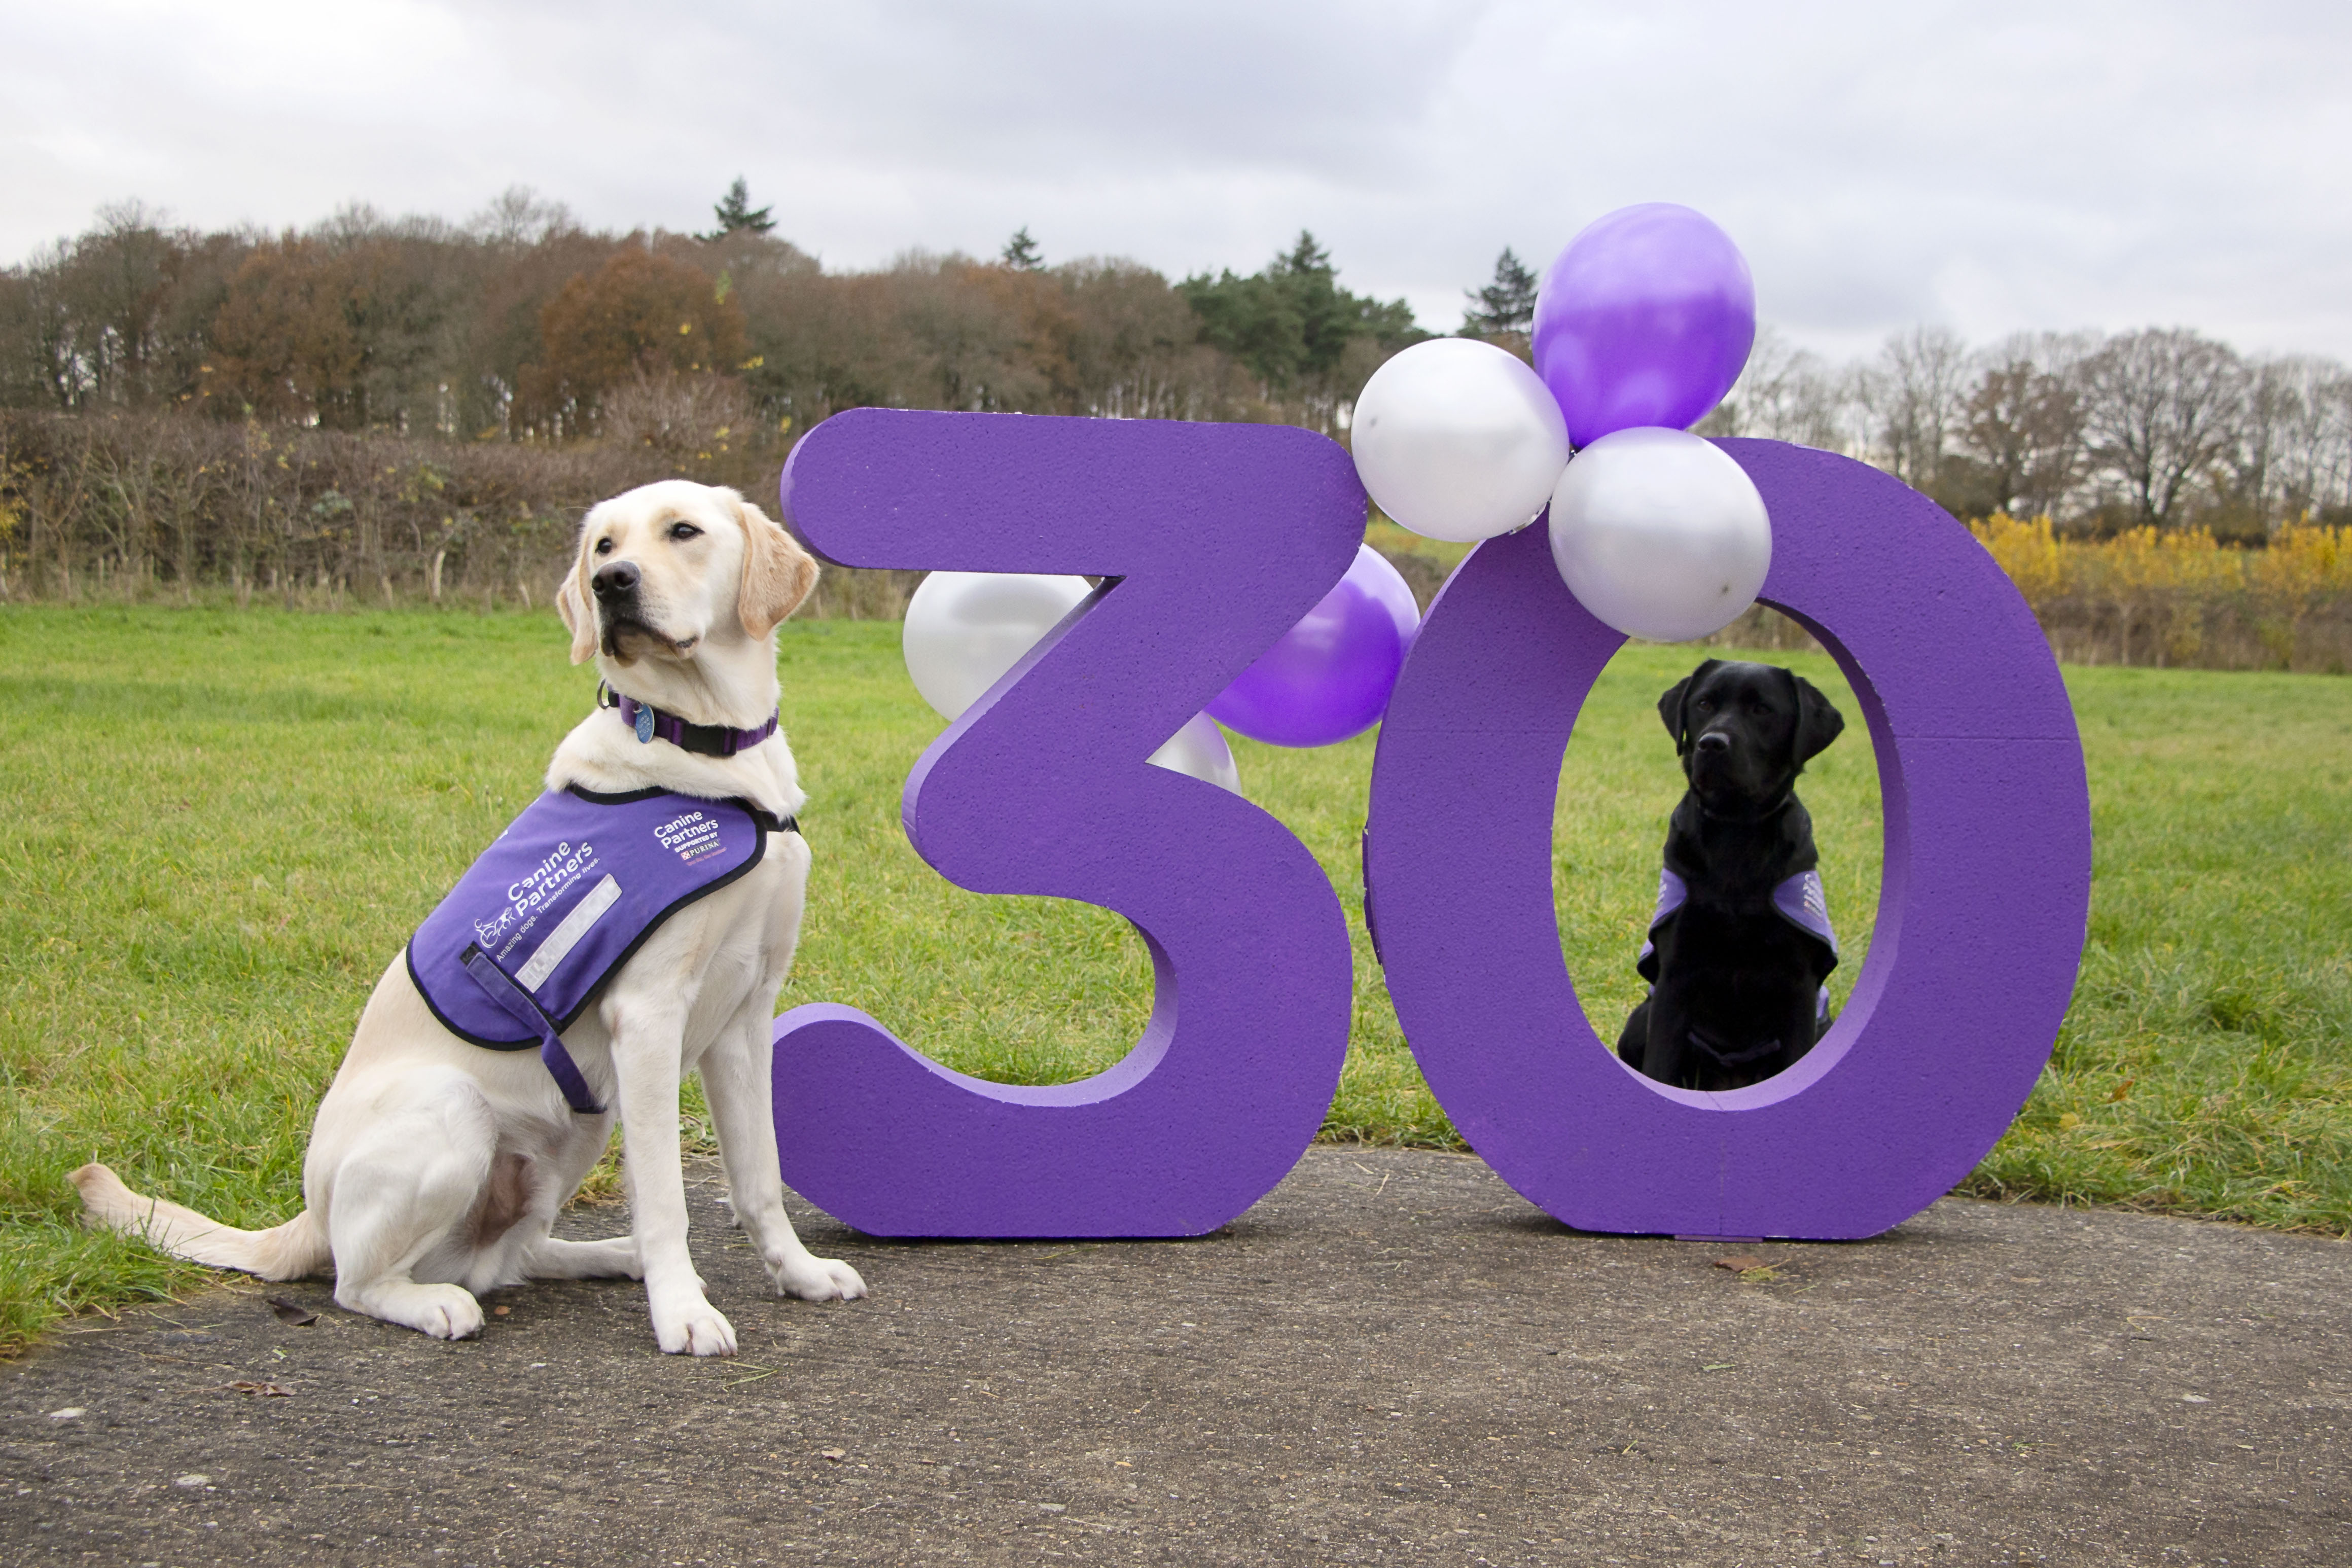 Two dogs in advanced training sit with a large purple 30 and purple and silver balloons